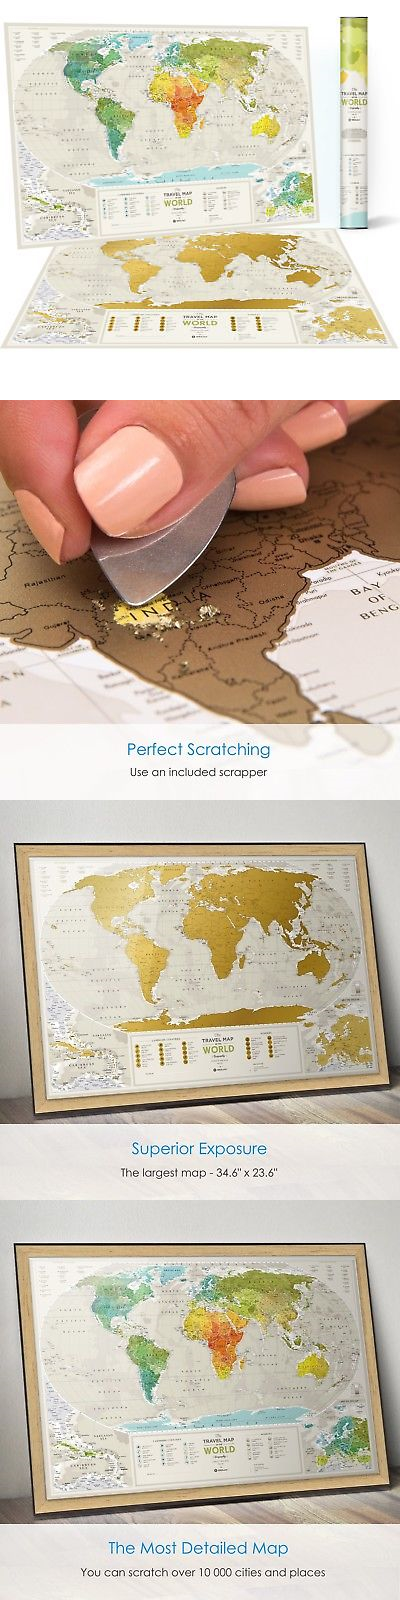 Other travel maps 164807 detailed scratch off places world map other travel maps 164807 detailed scratch off places world map premium edition 346 gumiabroncs